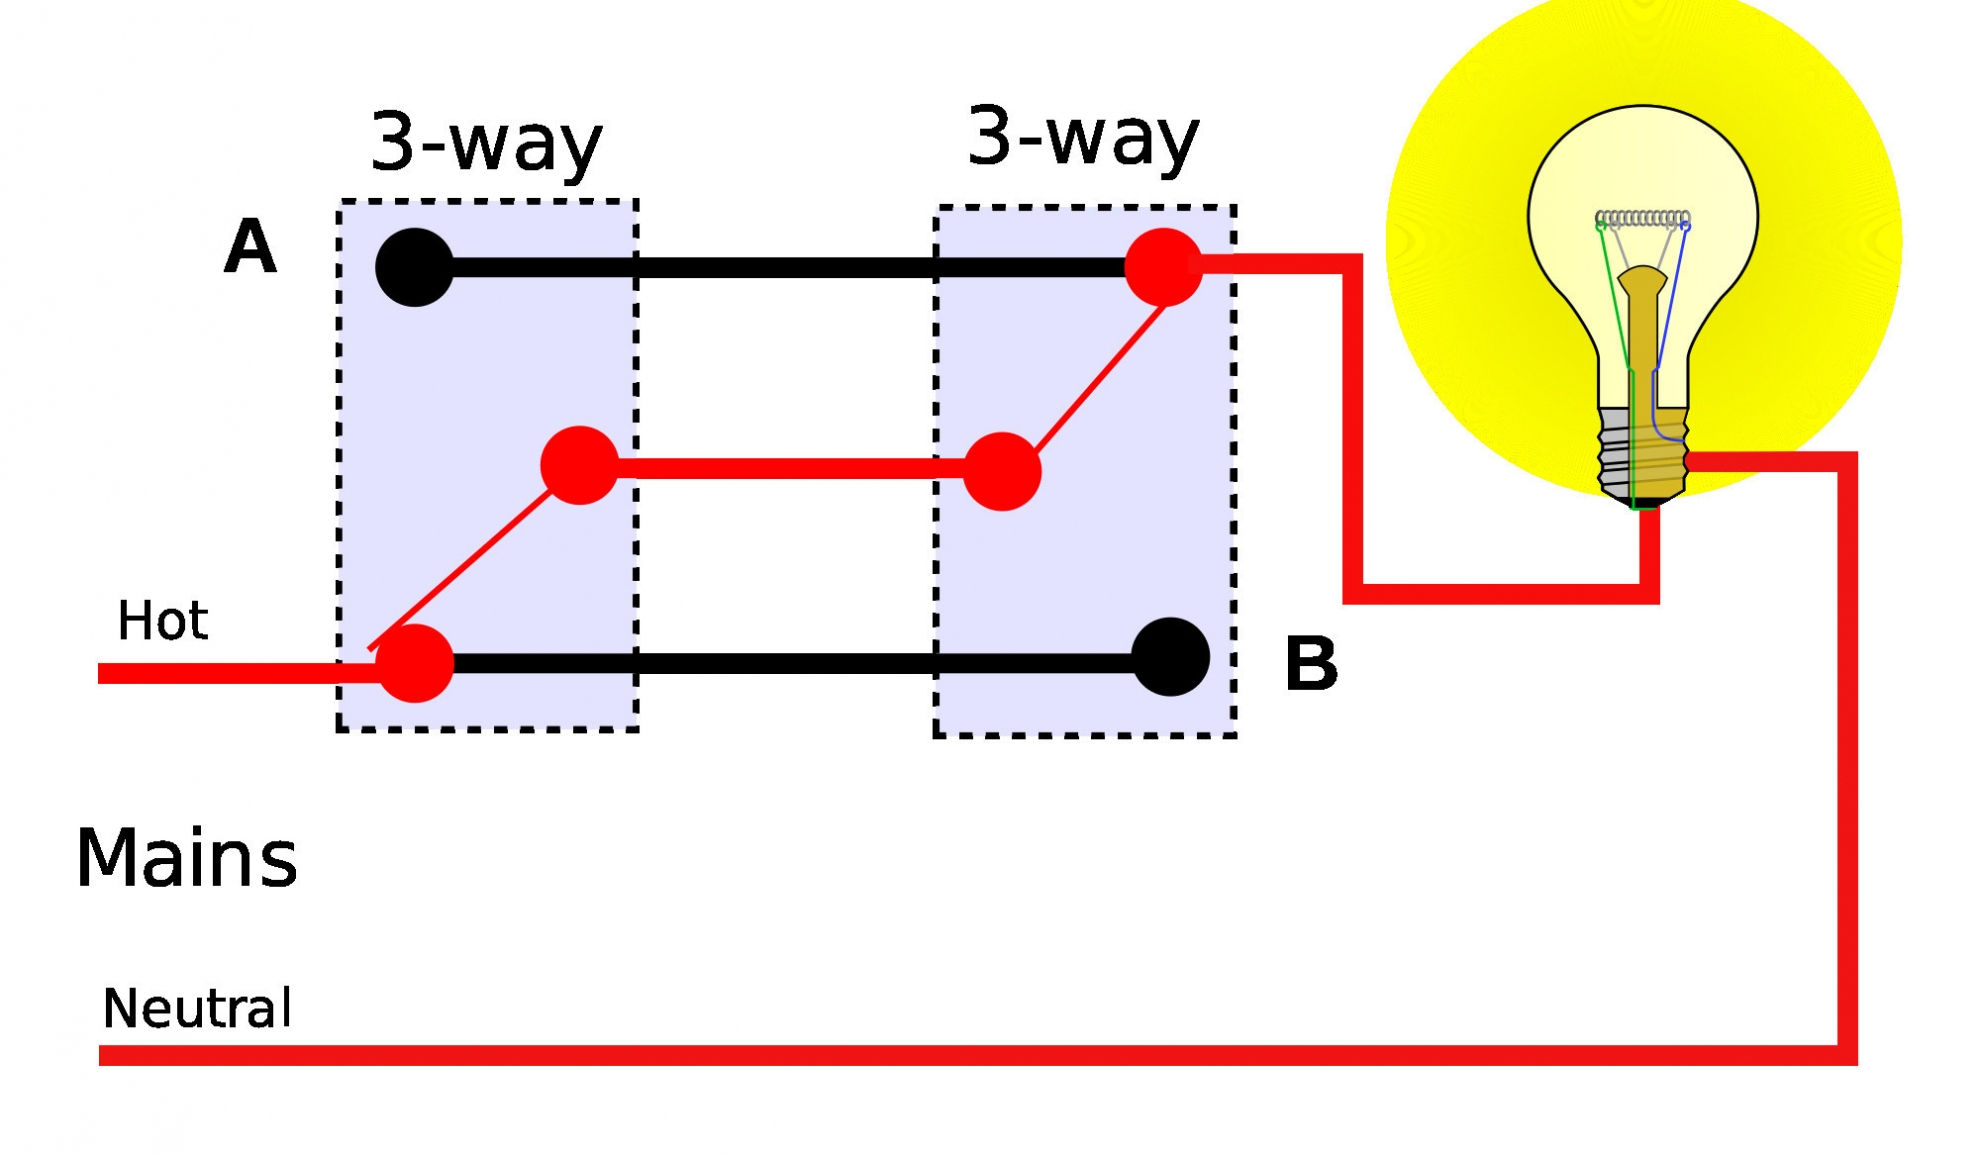 Two Way Switch Wiring Diagram – Wiring Diagram For 3 Way Switches - 4 Way Switch Wiring Diagram Multiple Lights